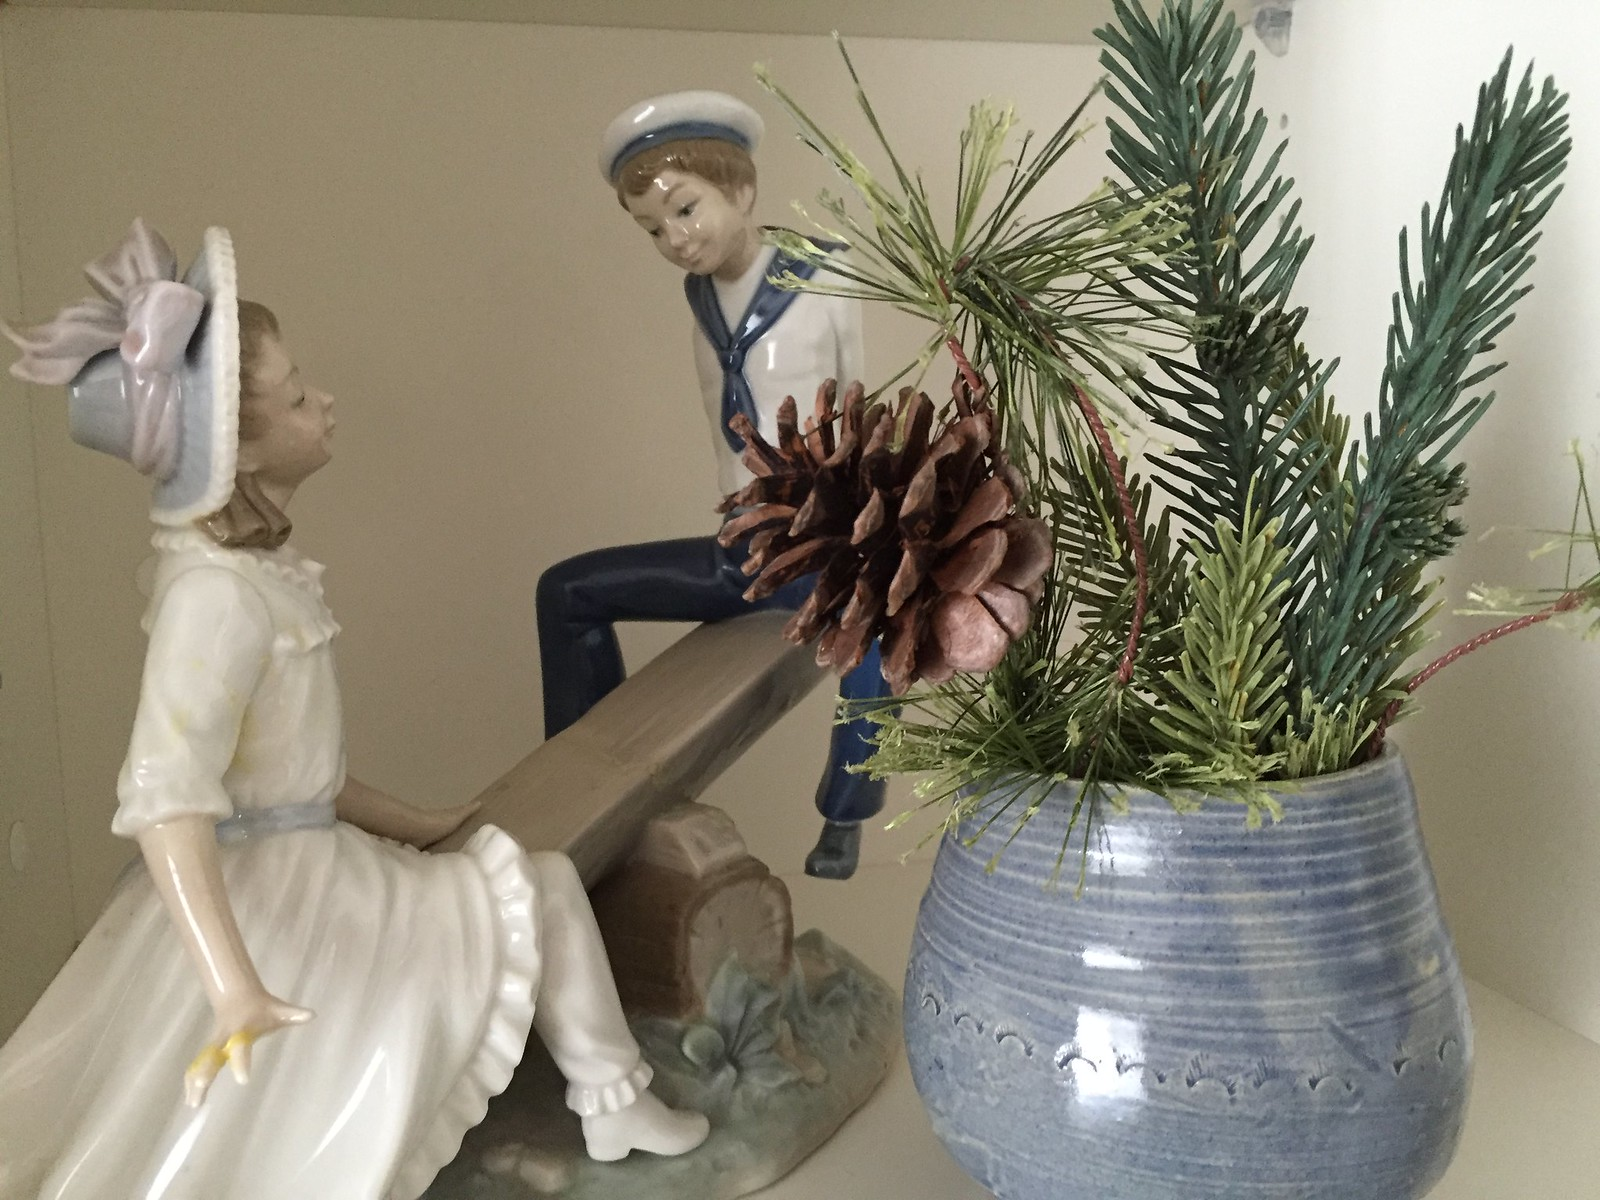 bits of Christmas greenery beside a Lladro figurine